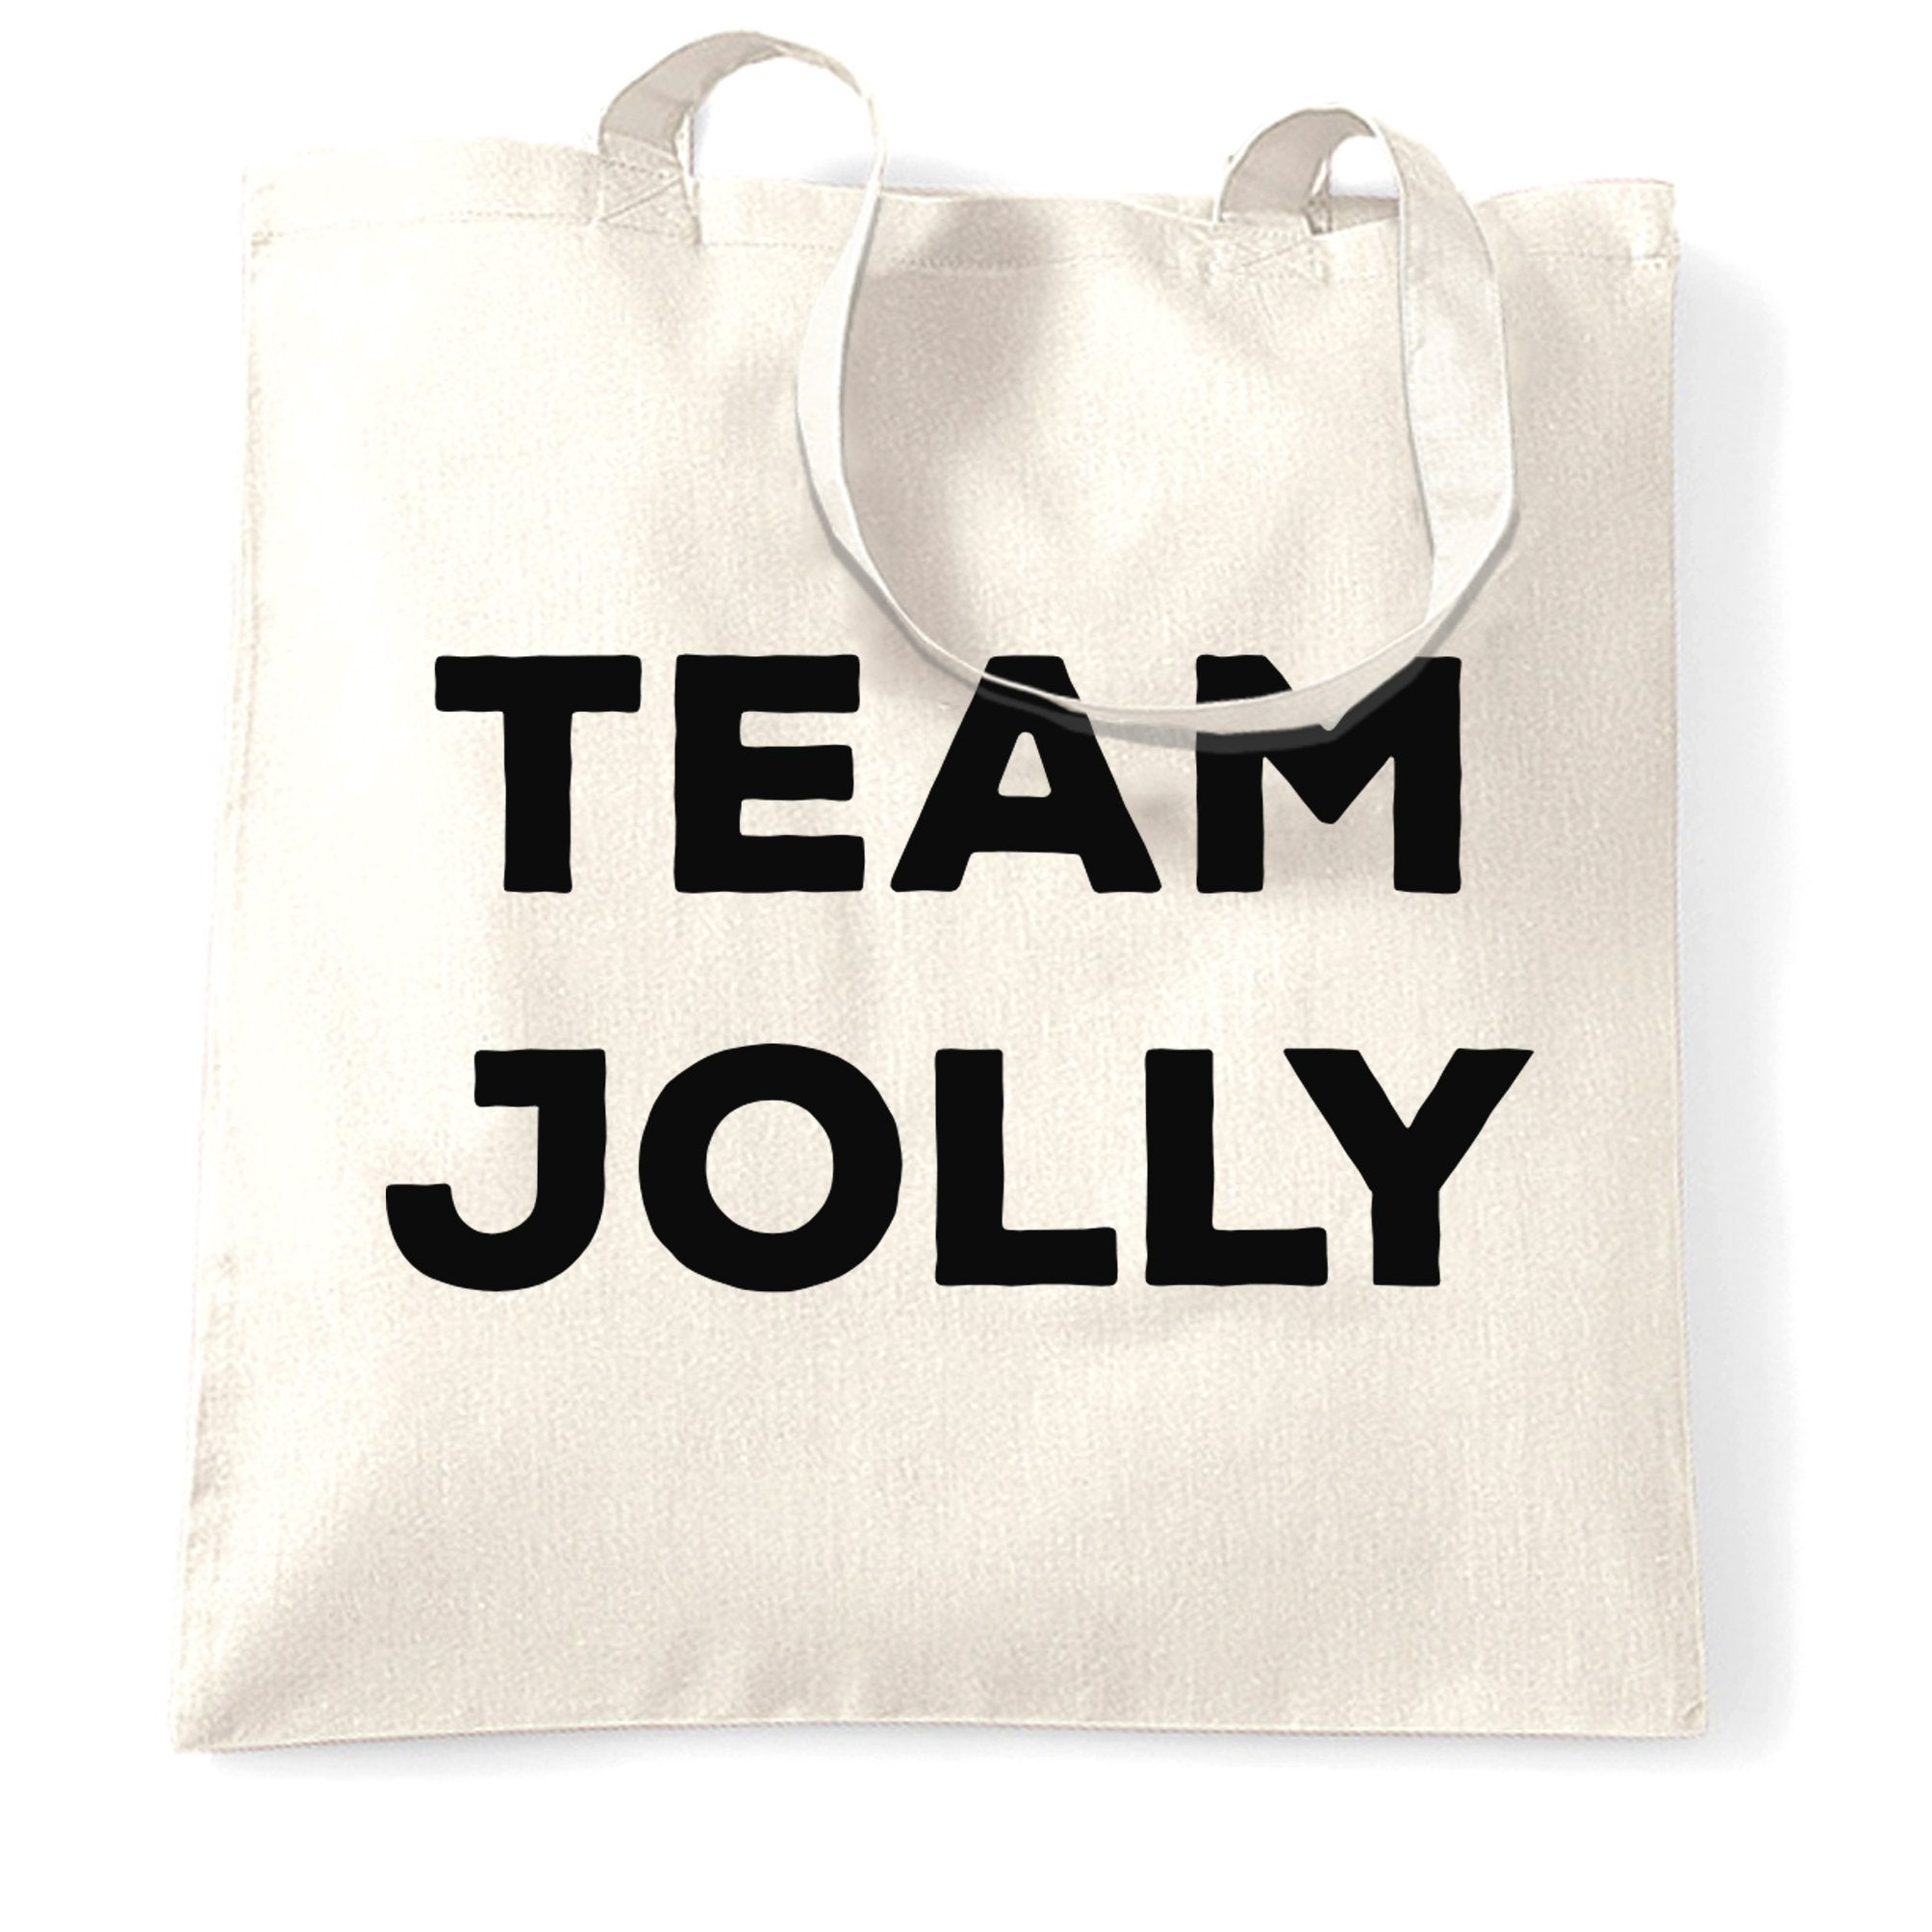 Novelty Christmas Tote Bag Team Jolly Slogan